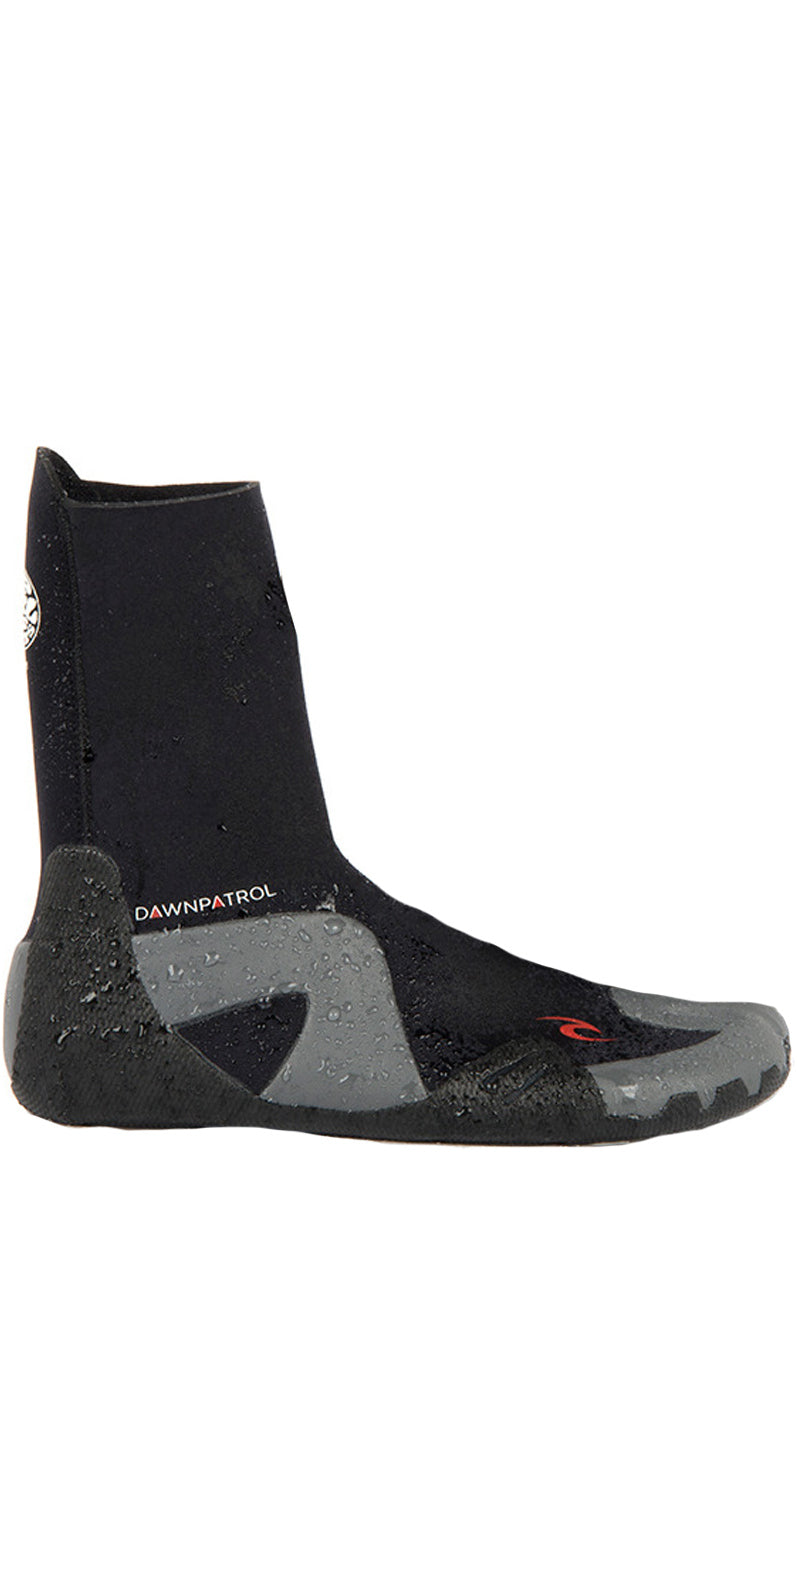 Rip Curl Dawn FlashBomb 7mm Round Toe Boot